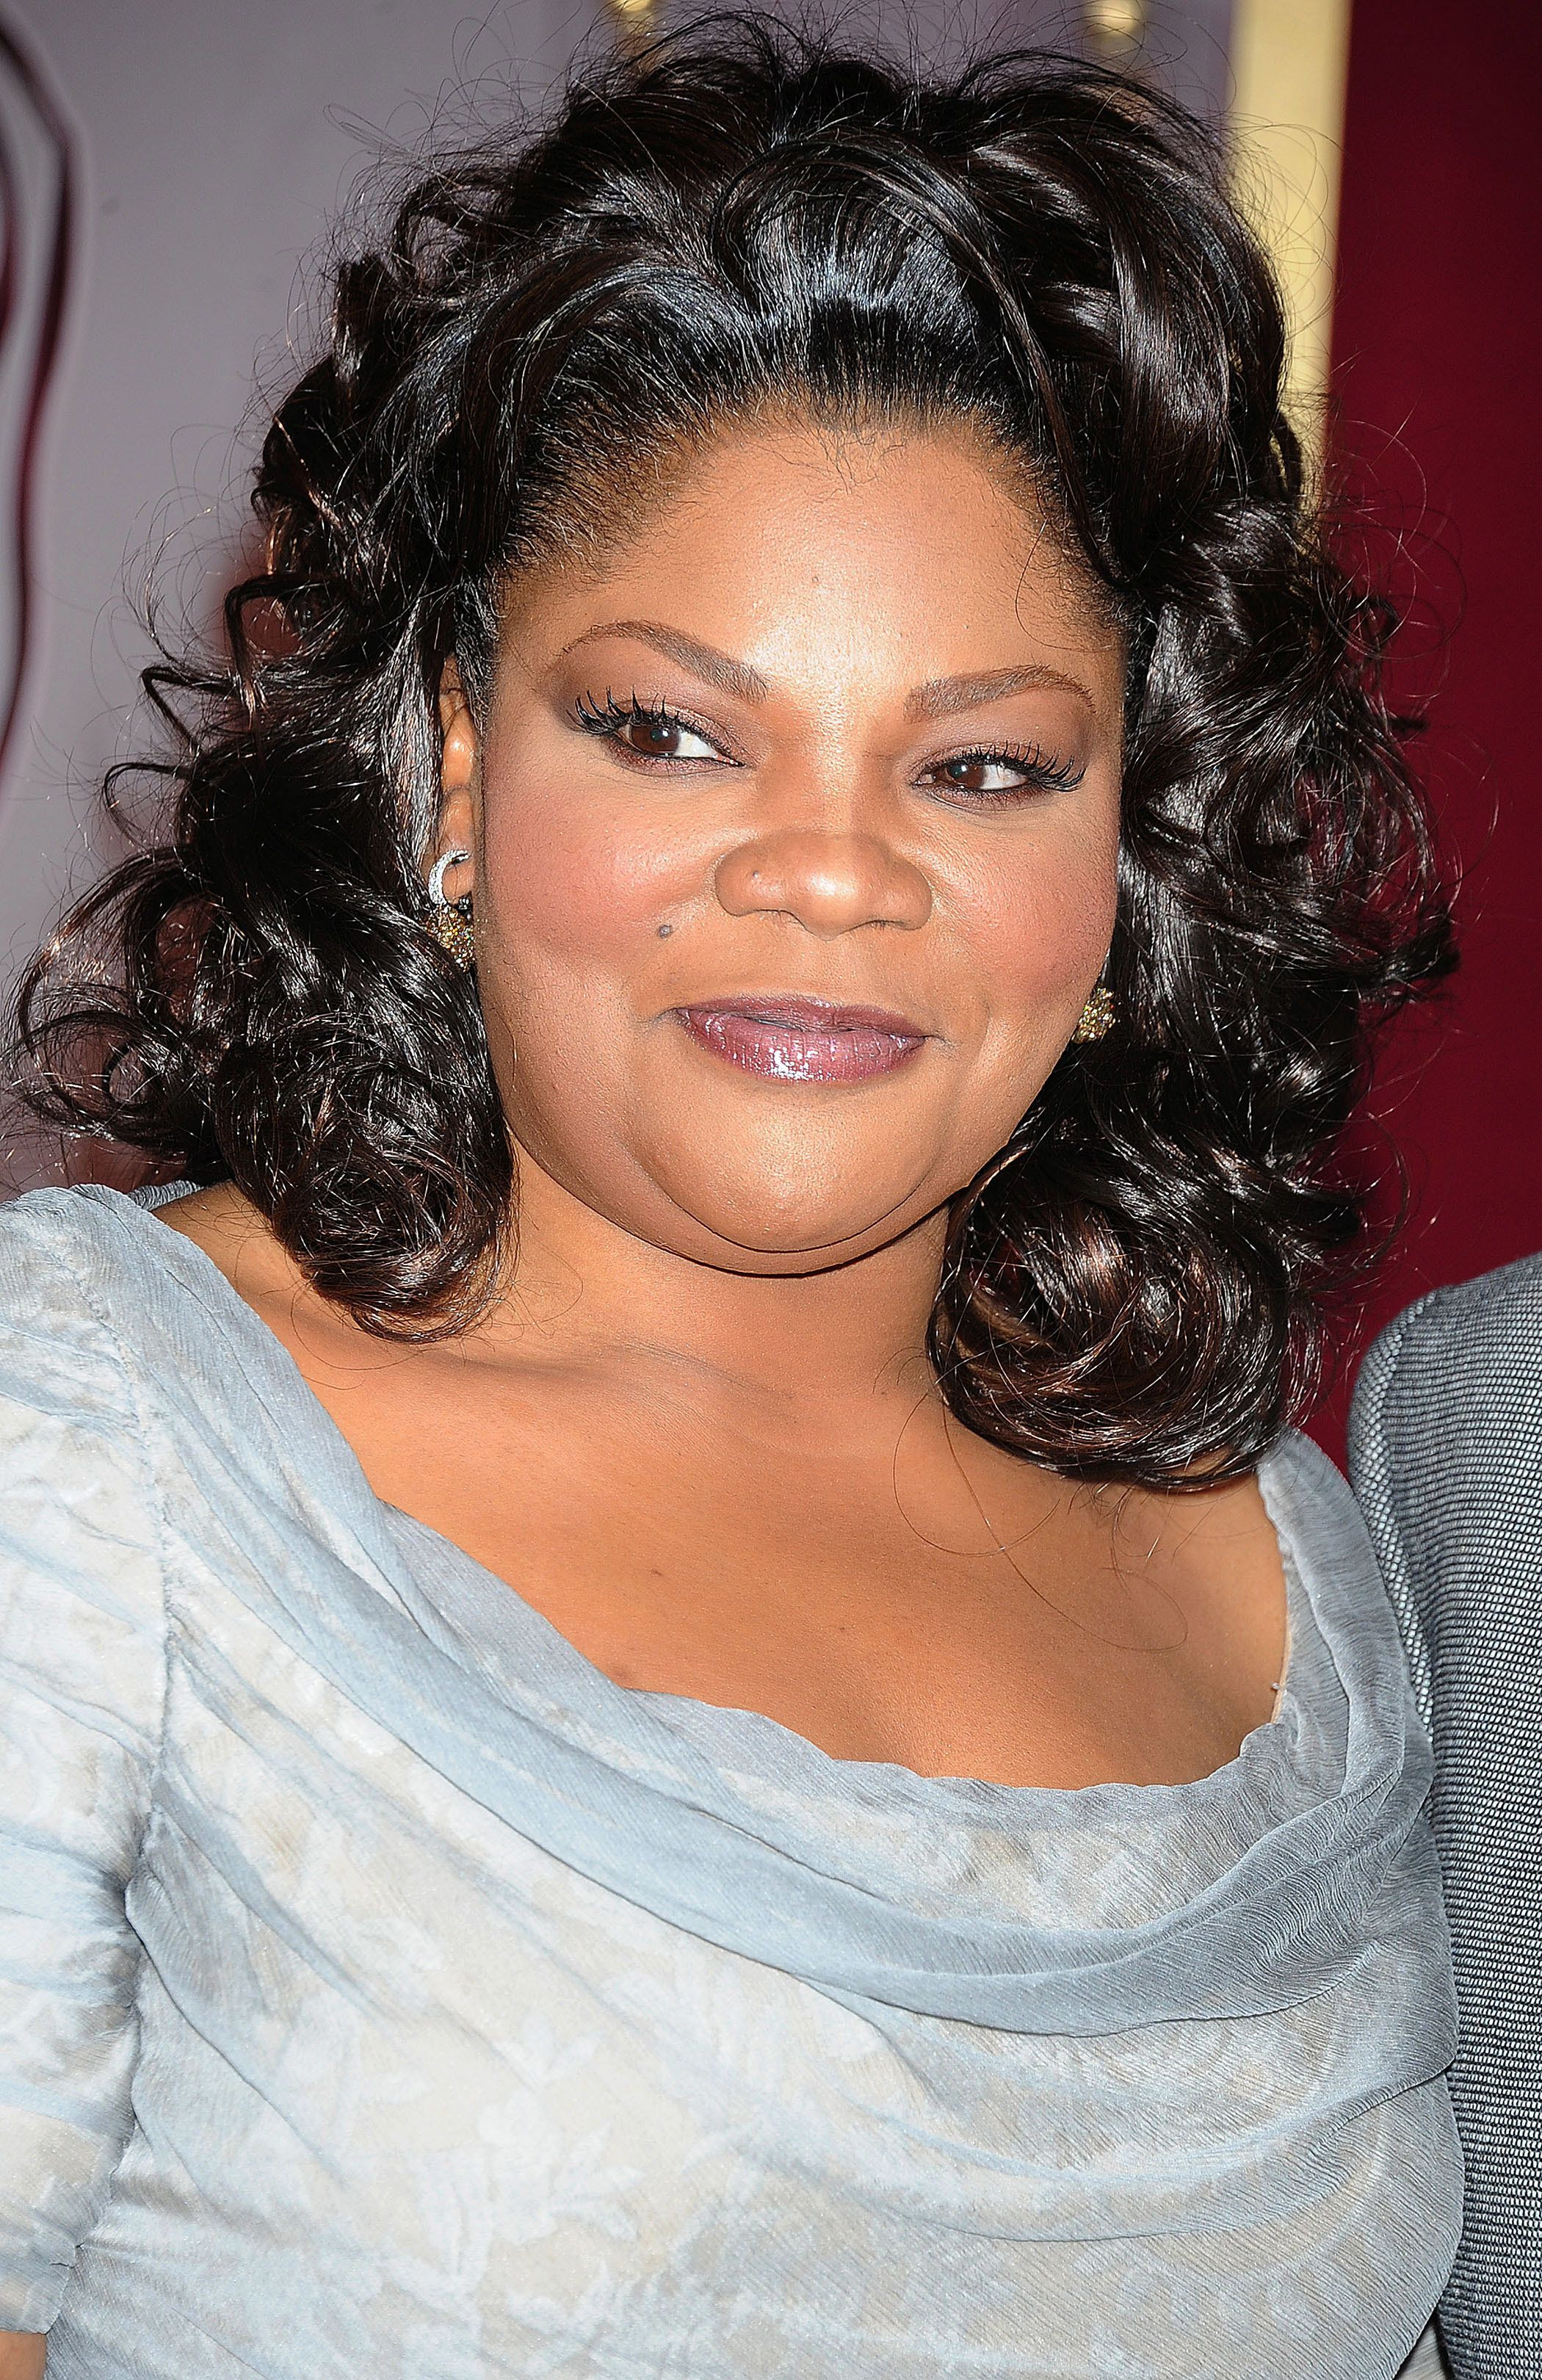 Mo'Nique poses at the 83rd Academy Awards Nominations Announcement held at AMPAS Samuel Goldwyn Theater on January 25, 2011 in Beverly Hills, California.